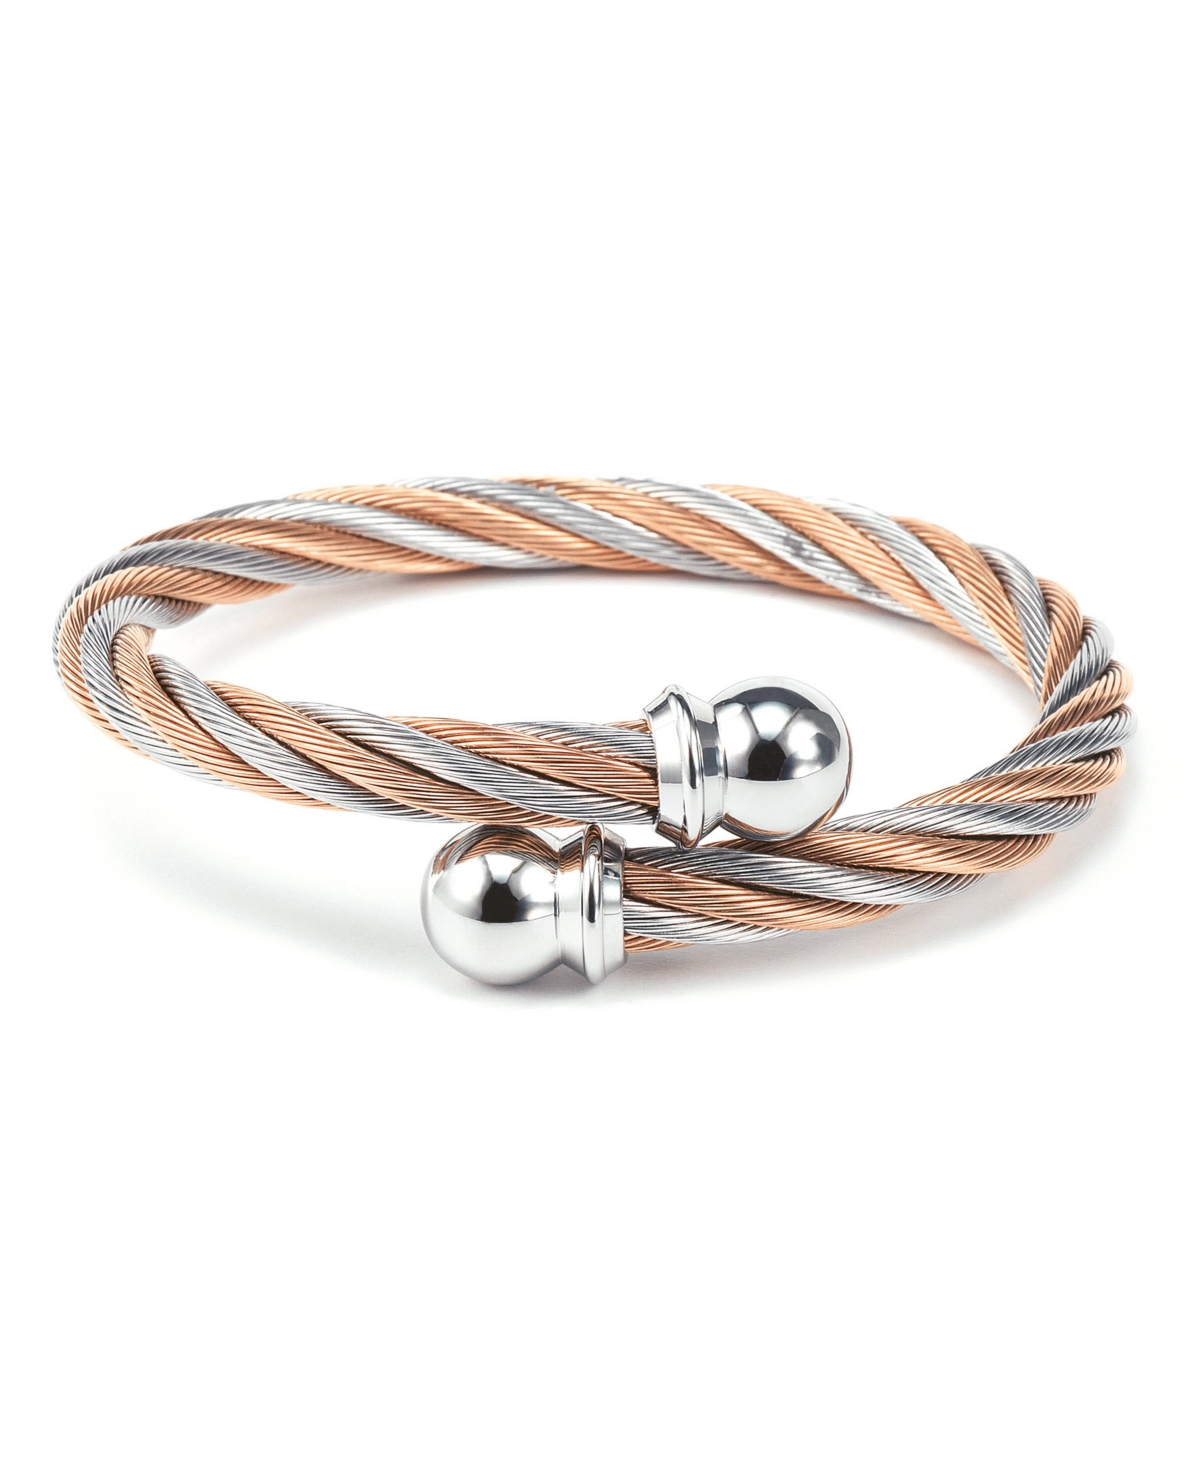 Celtic, Stainless steel Two Tone bangle, Stainless steel rose gold Pvd